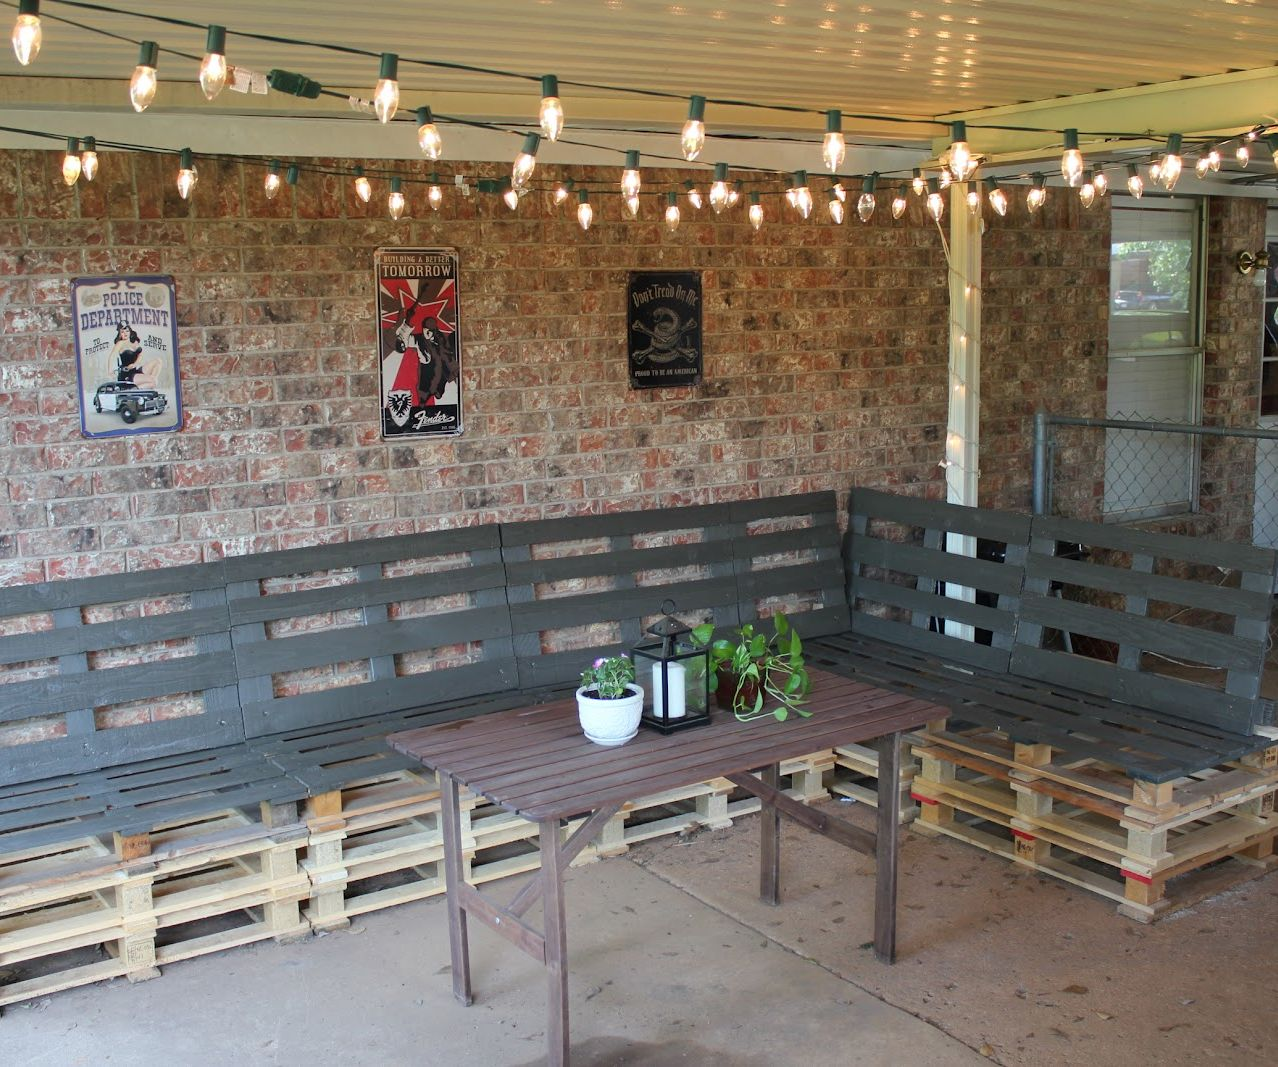 12 Diy Old Pallet Stairs Ideas: DIY Pallet Furniture : 12 Steps (with Pictures